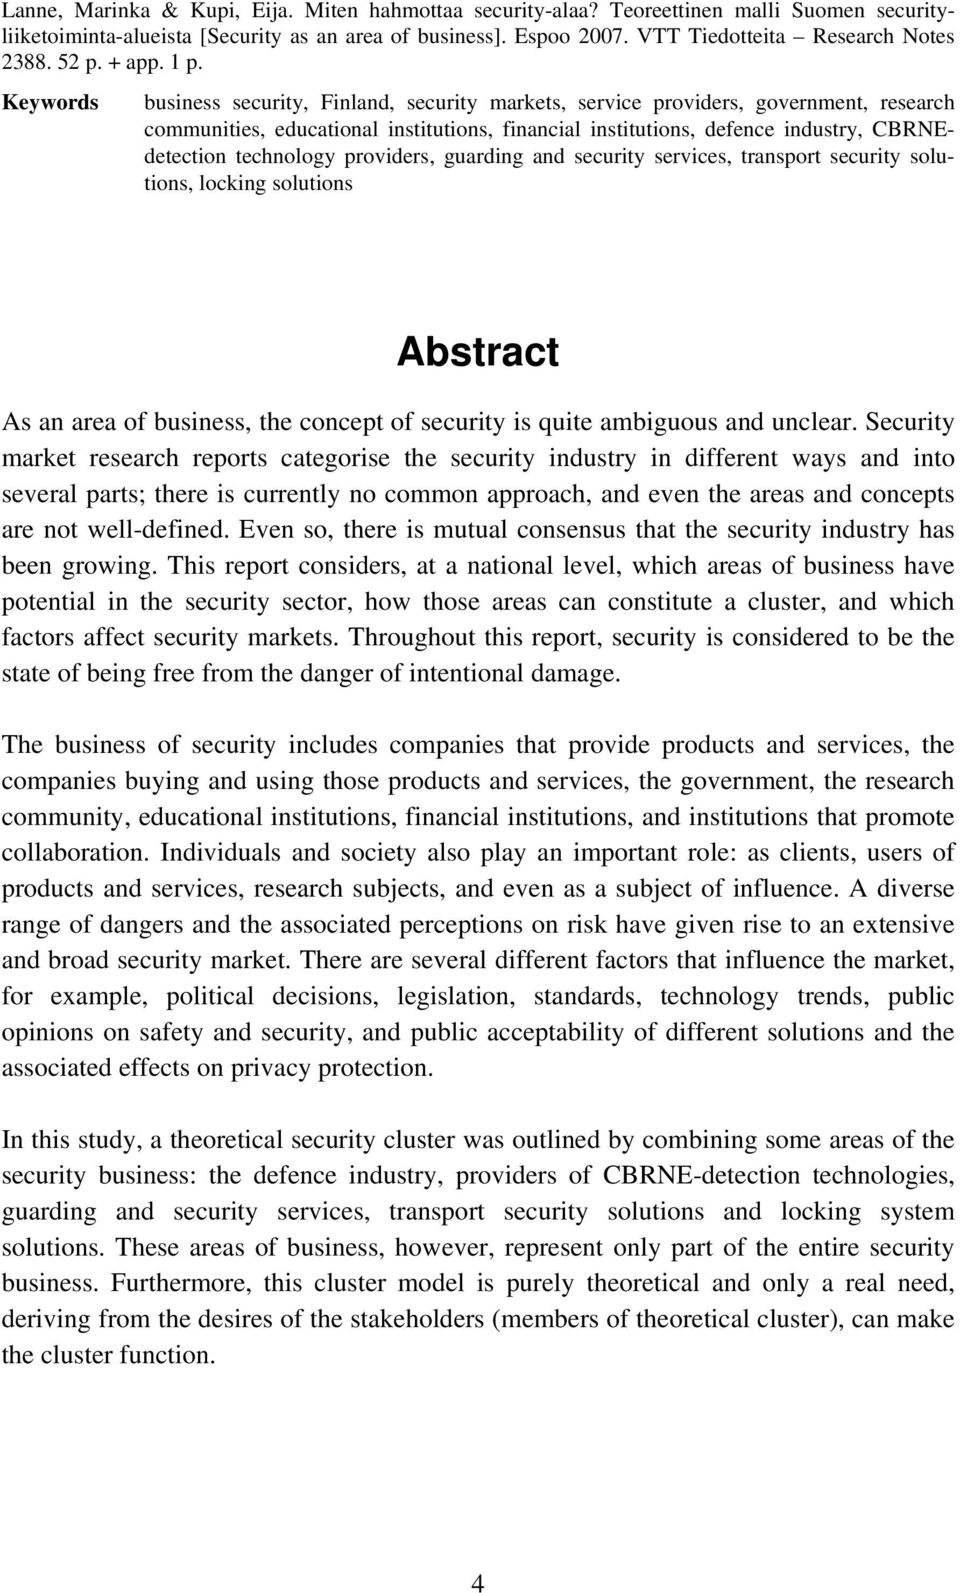 Keywords business security, Finland, security markets, service providers, government, research communities, educational institutions, financial institutions, defence industry, CBRNEdetection